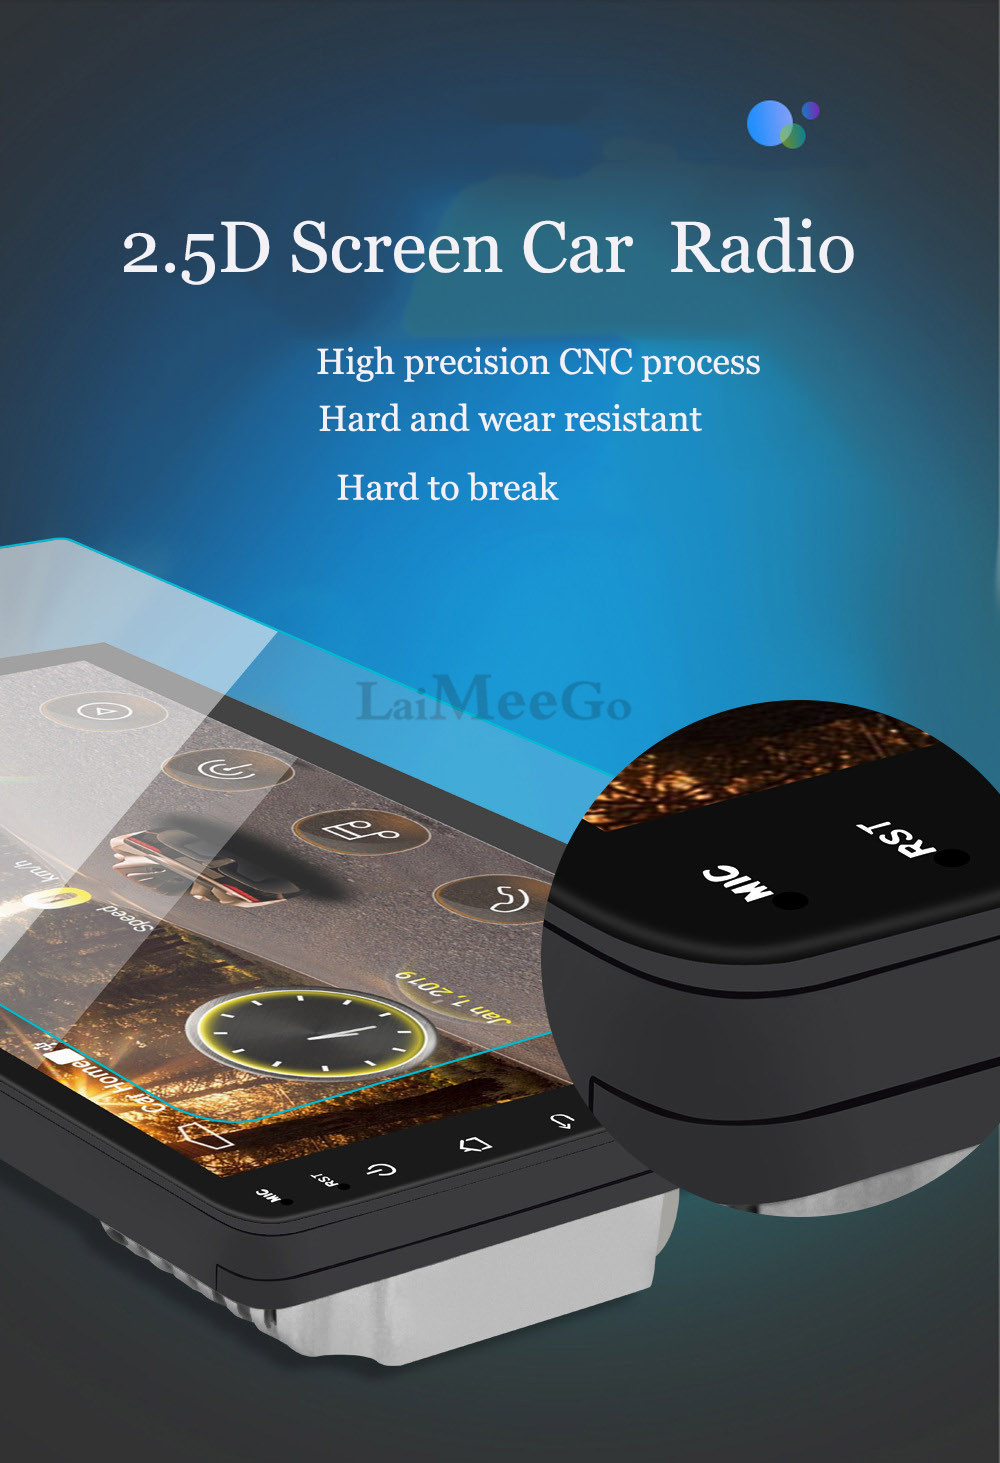 2din Car radio 9 10.1inch Android system Auto stereo 2.5D Capacitive Screen Bluetooth WIFI GPS Quad Core For Universal Car  (3)